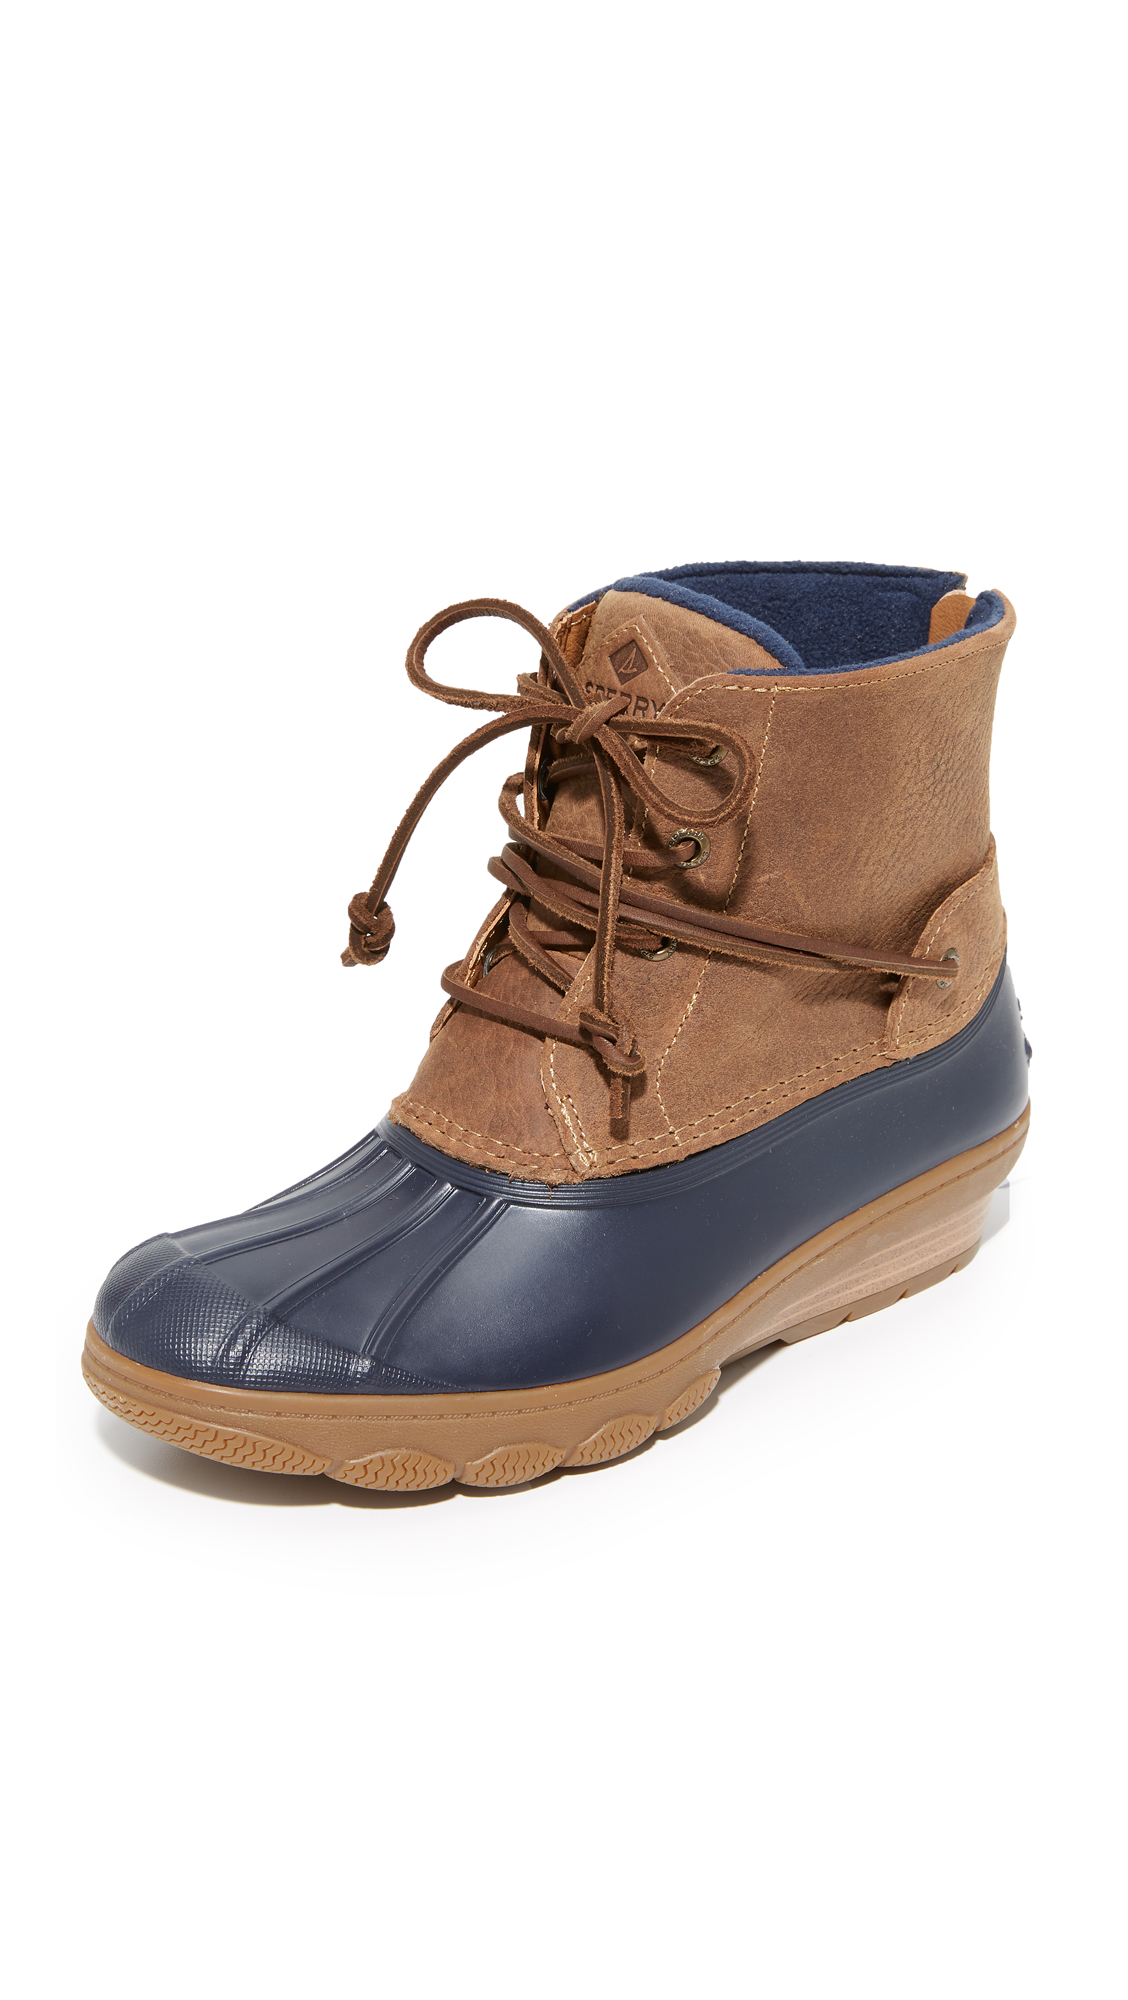 Sperry Saltwater Wedge Tide Booties - Navy/Tan